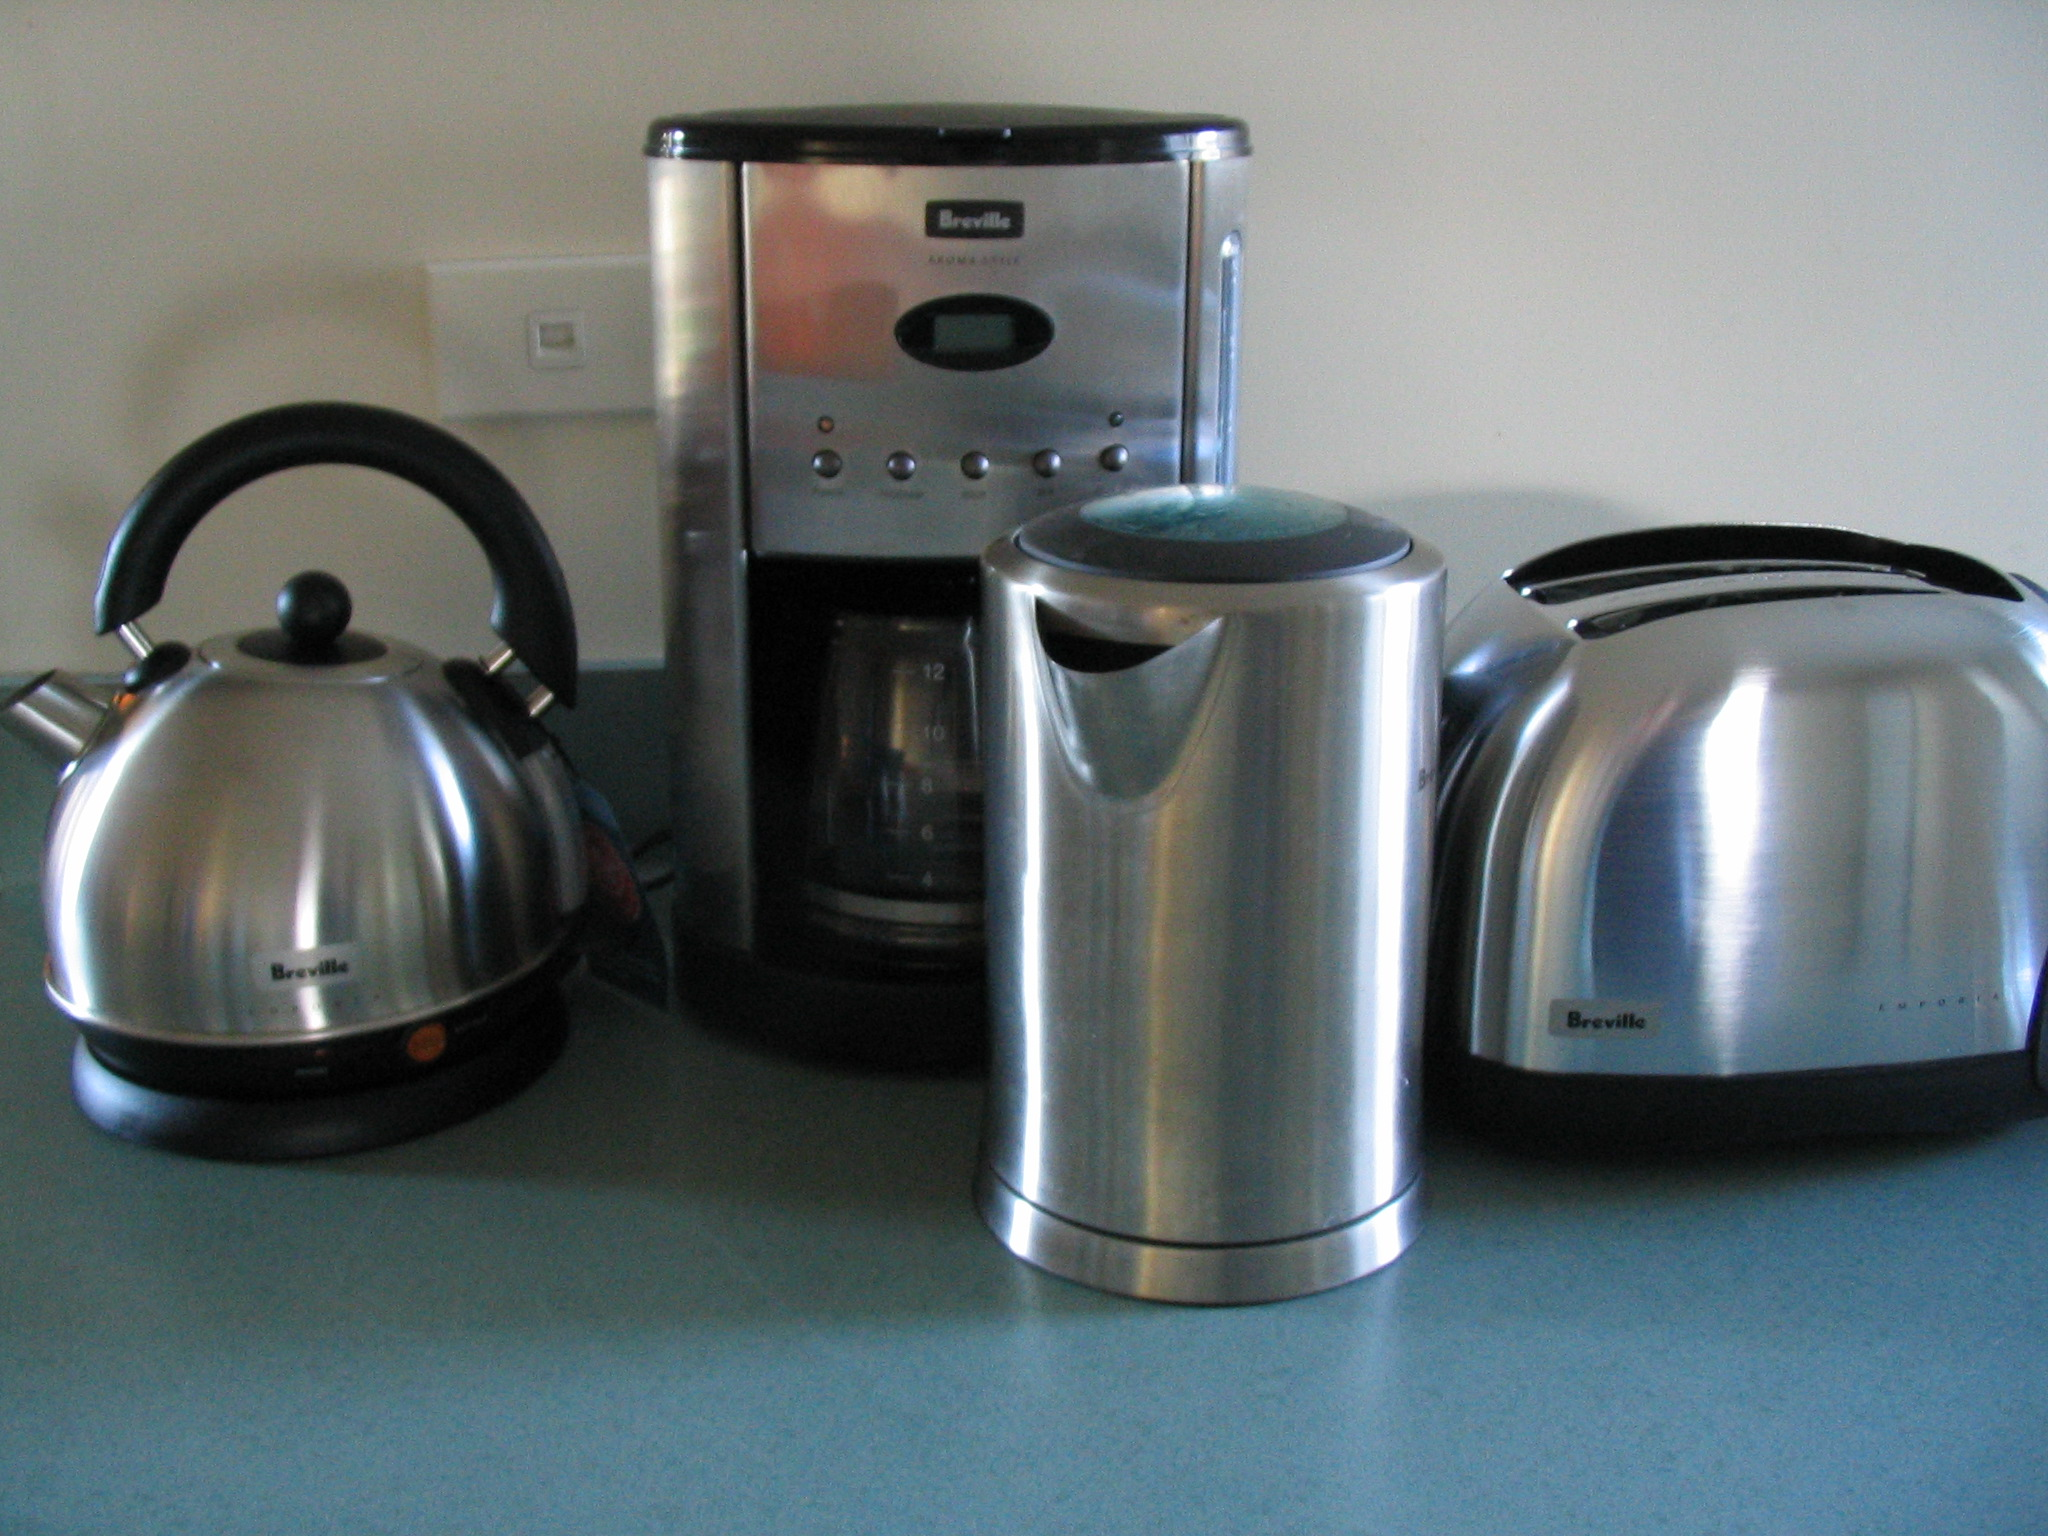 Home appliance - Wikipedia, the free encyclopedia